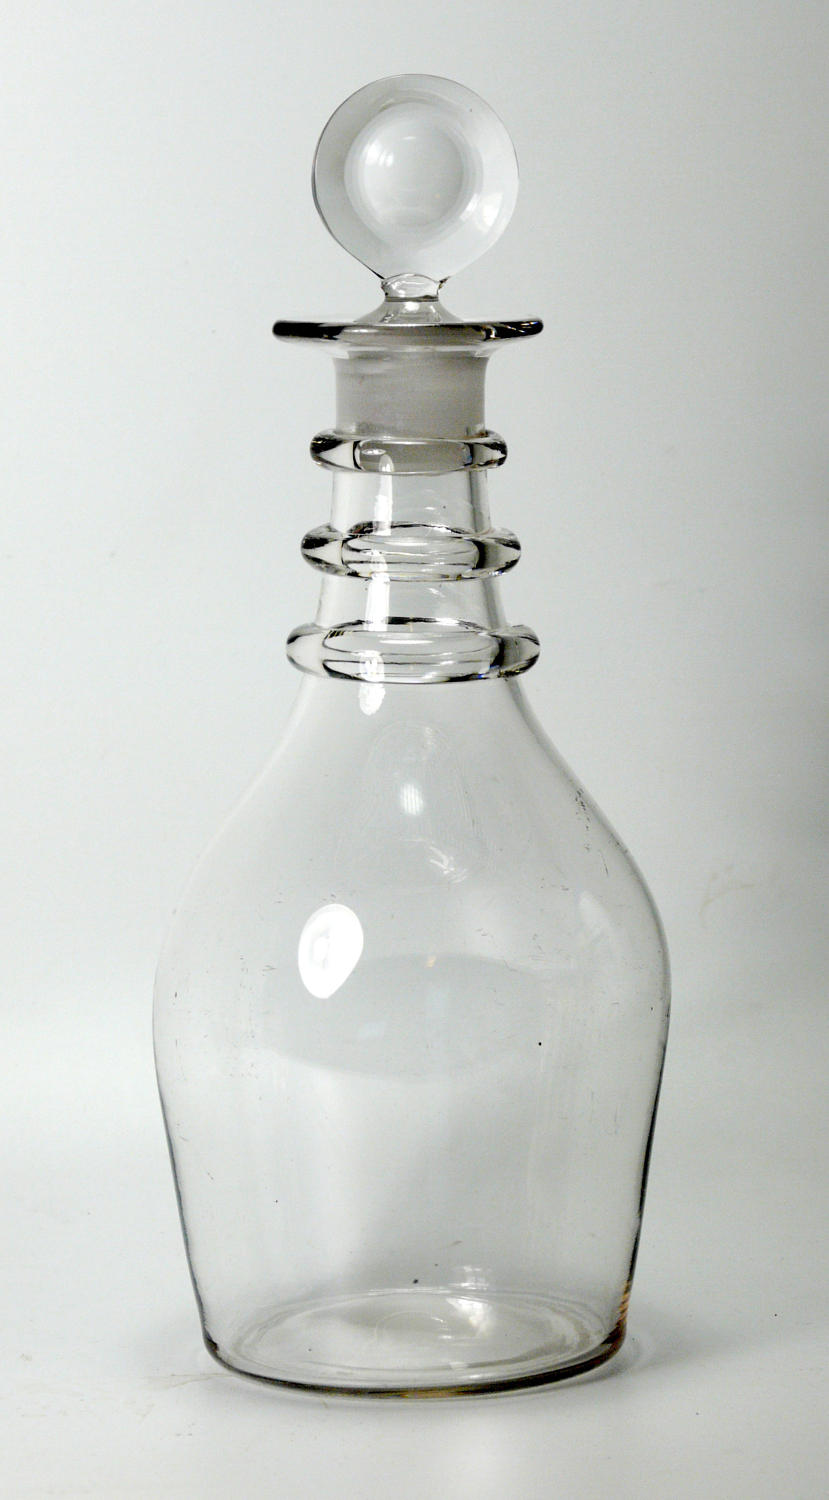 6571 A plain 'prussian' decanter with a target stopper